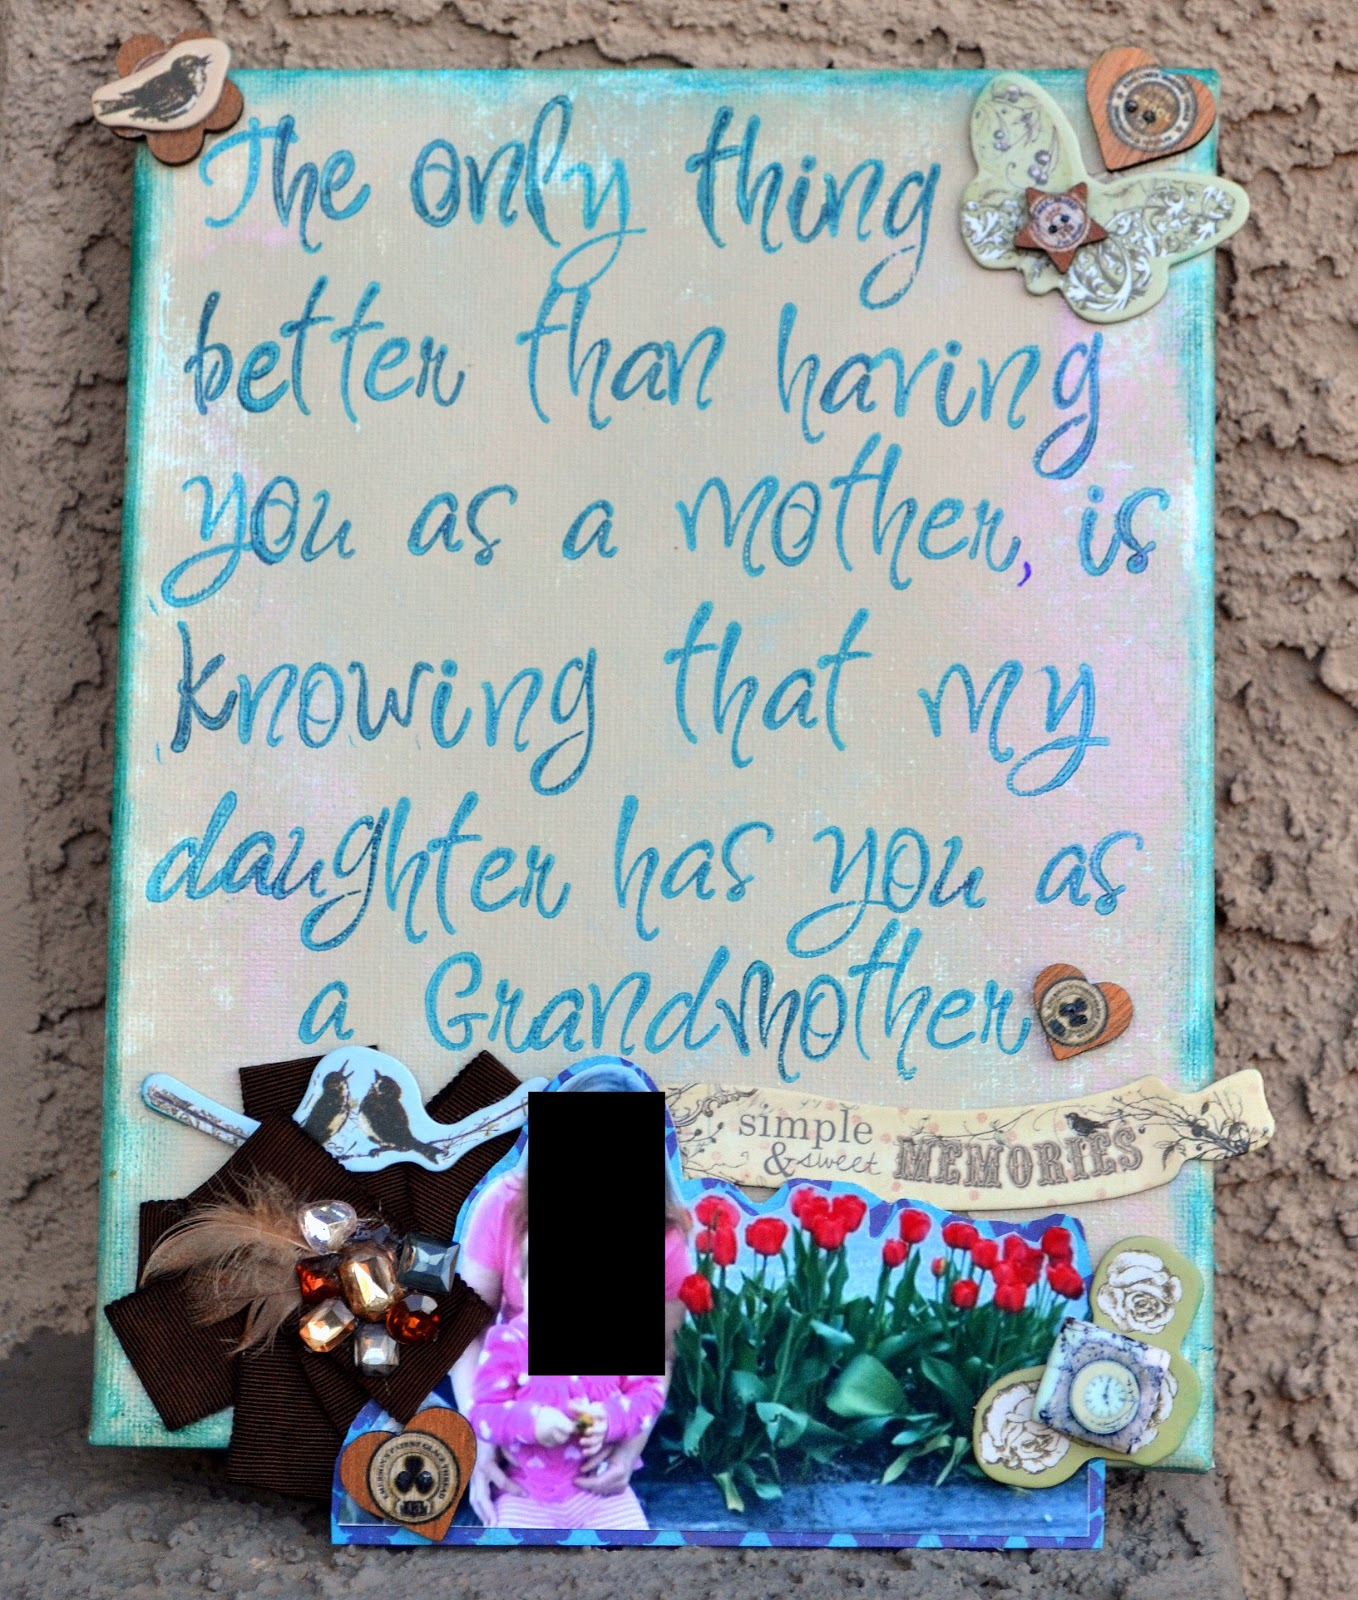 "The quote reads: ""The only thing better than having you as a Mother ..."